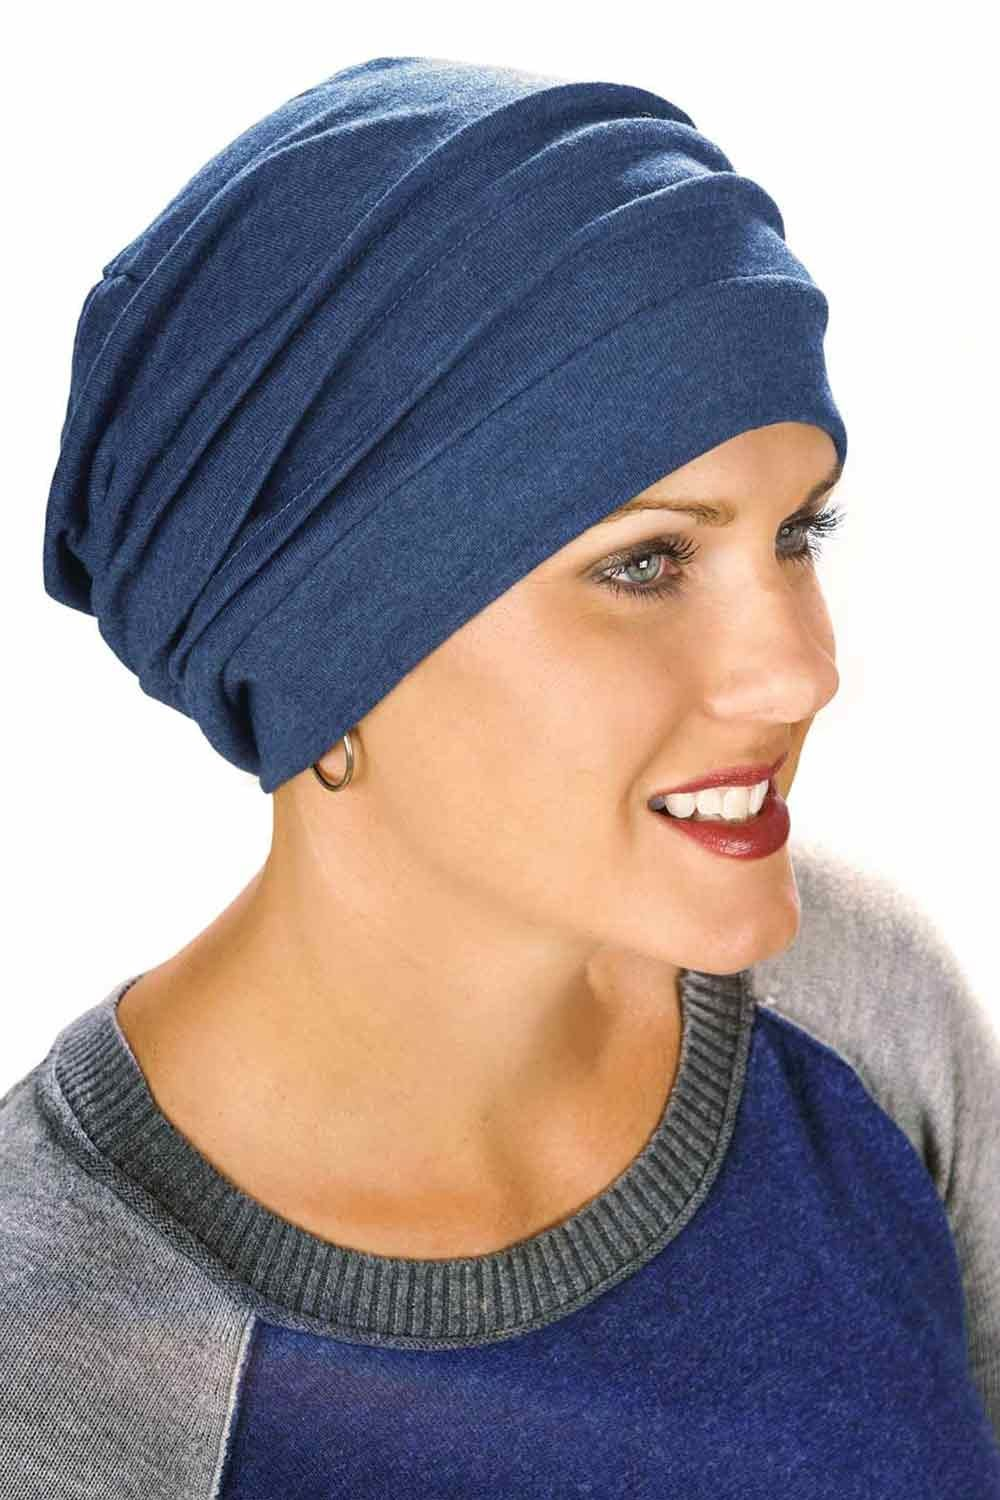 Cotton snoods are good for all season wear